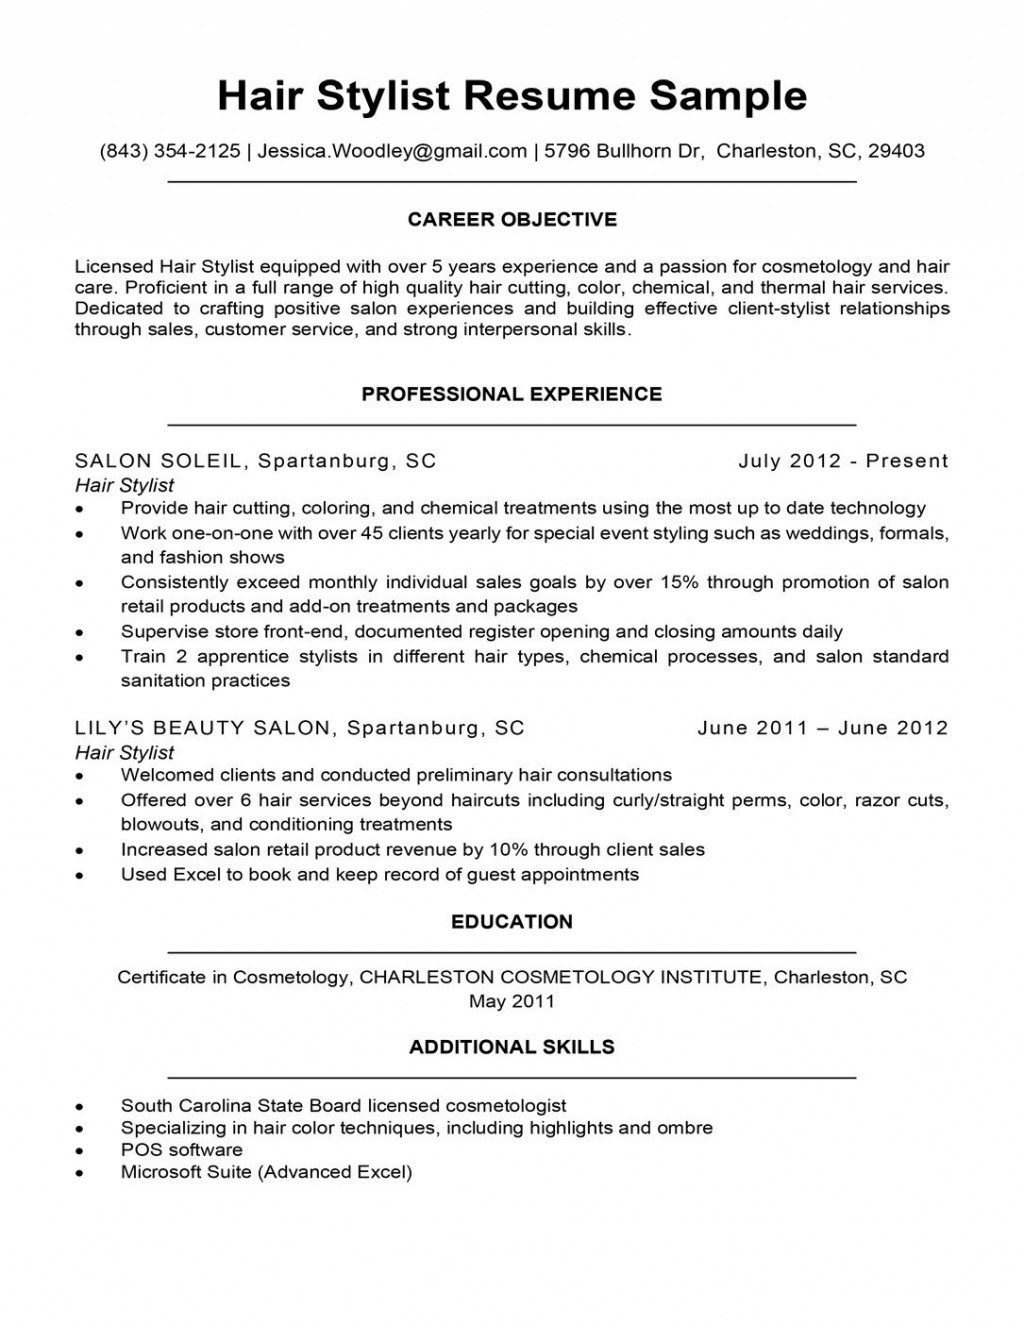 007 Beautiful Hair Stylist Resume Template High Definition  Word Free DownloadLarge